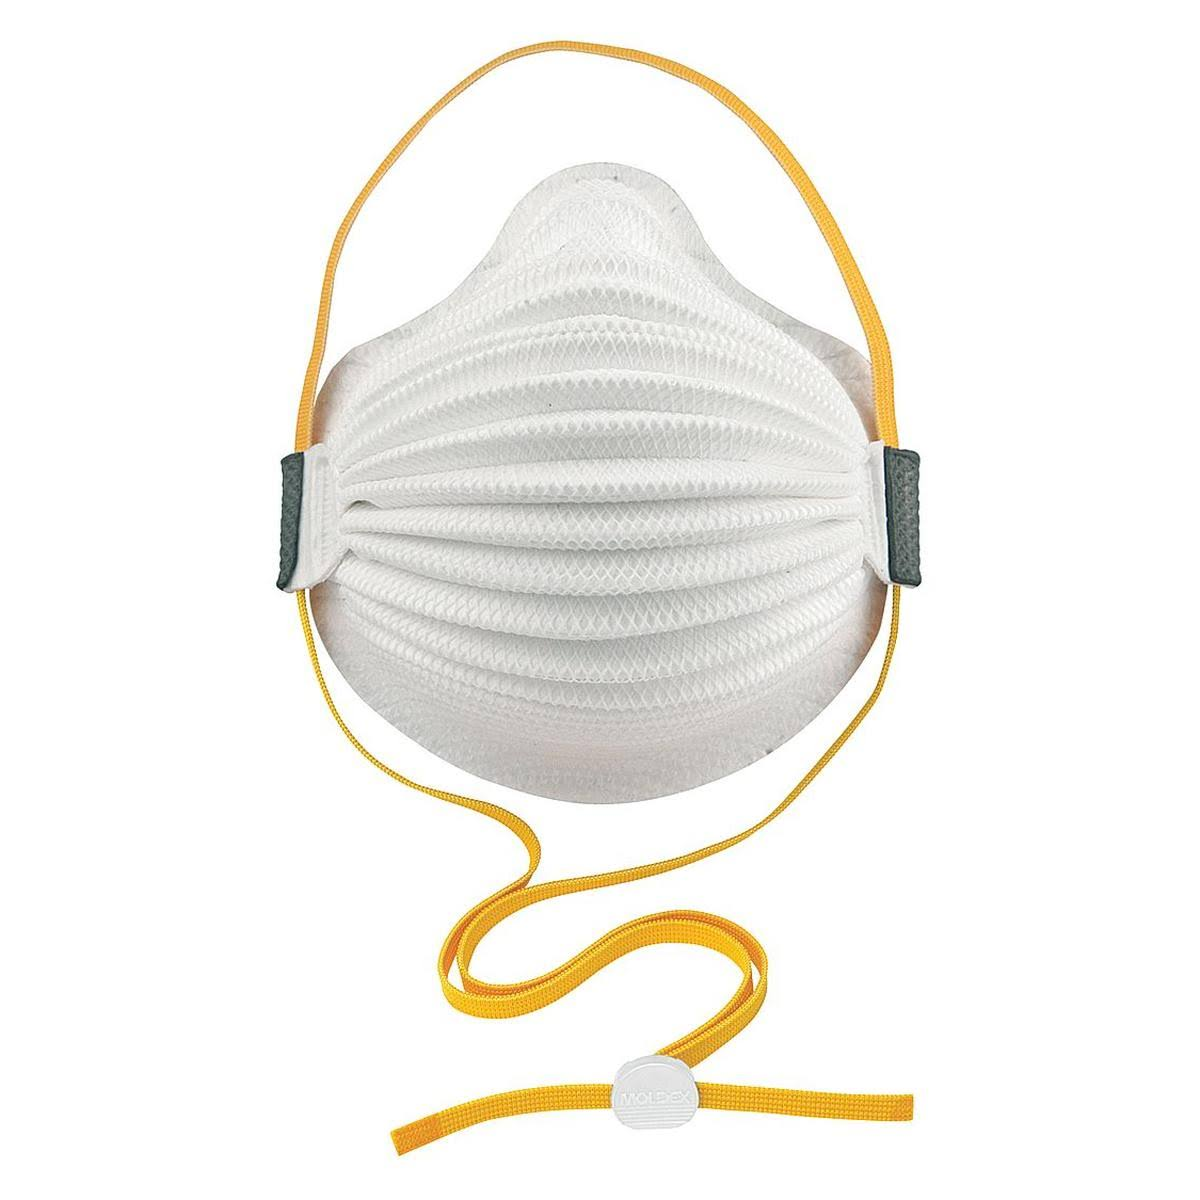 Moldex 4300P95 P95 Disposable Respirator, M/L, White, PK8